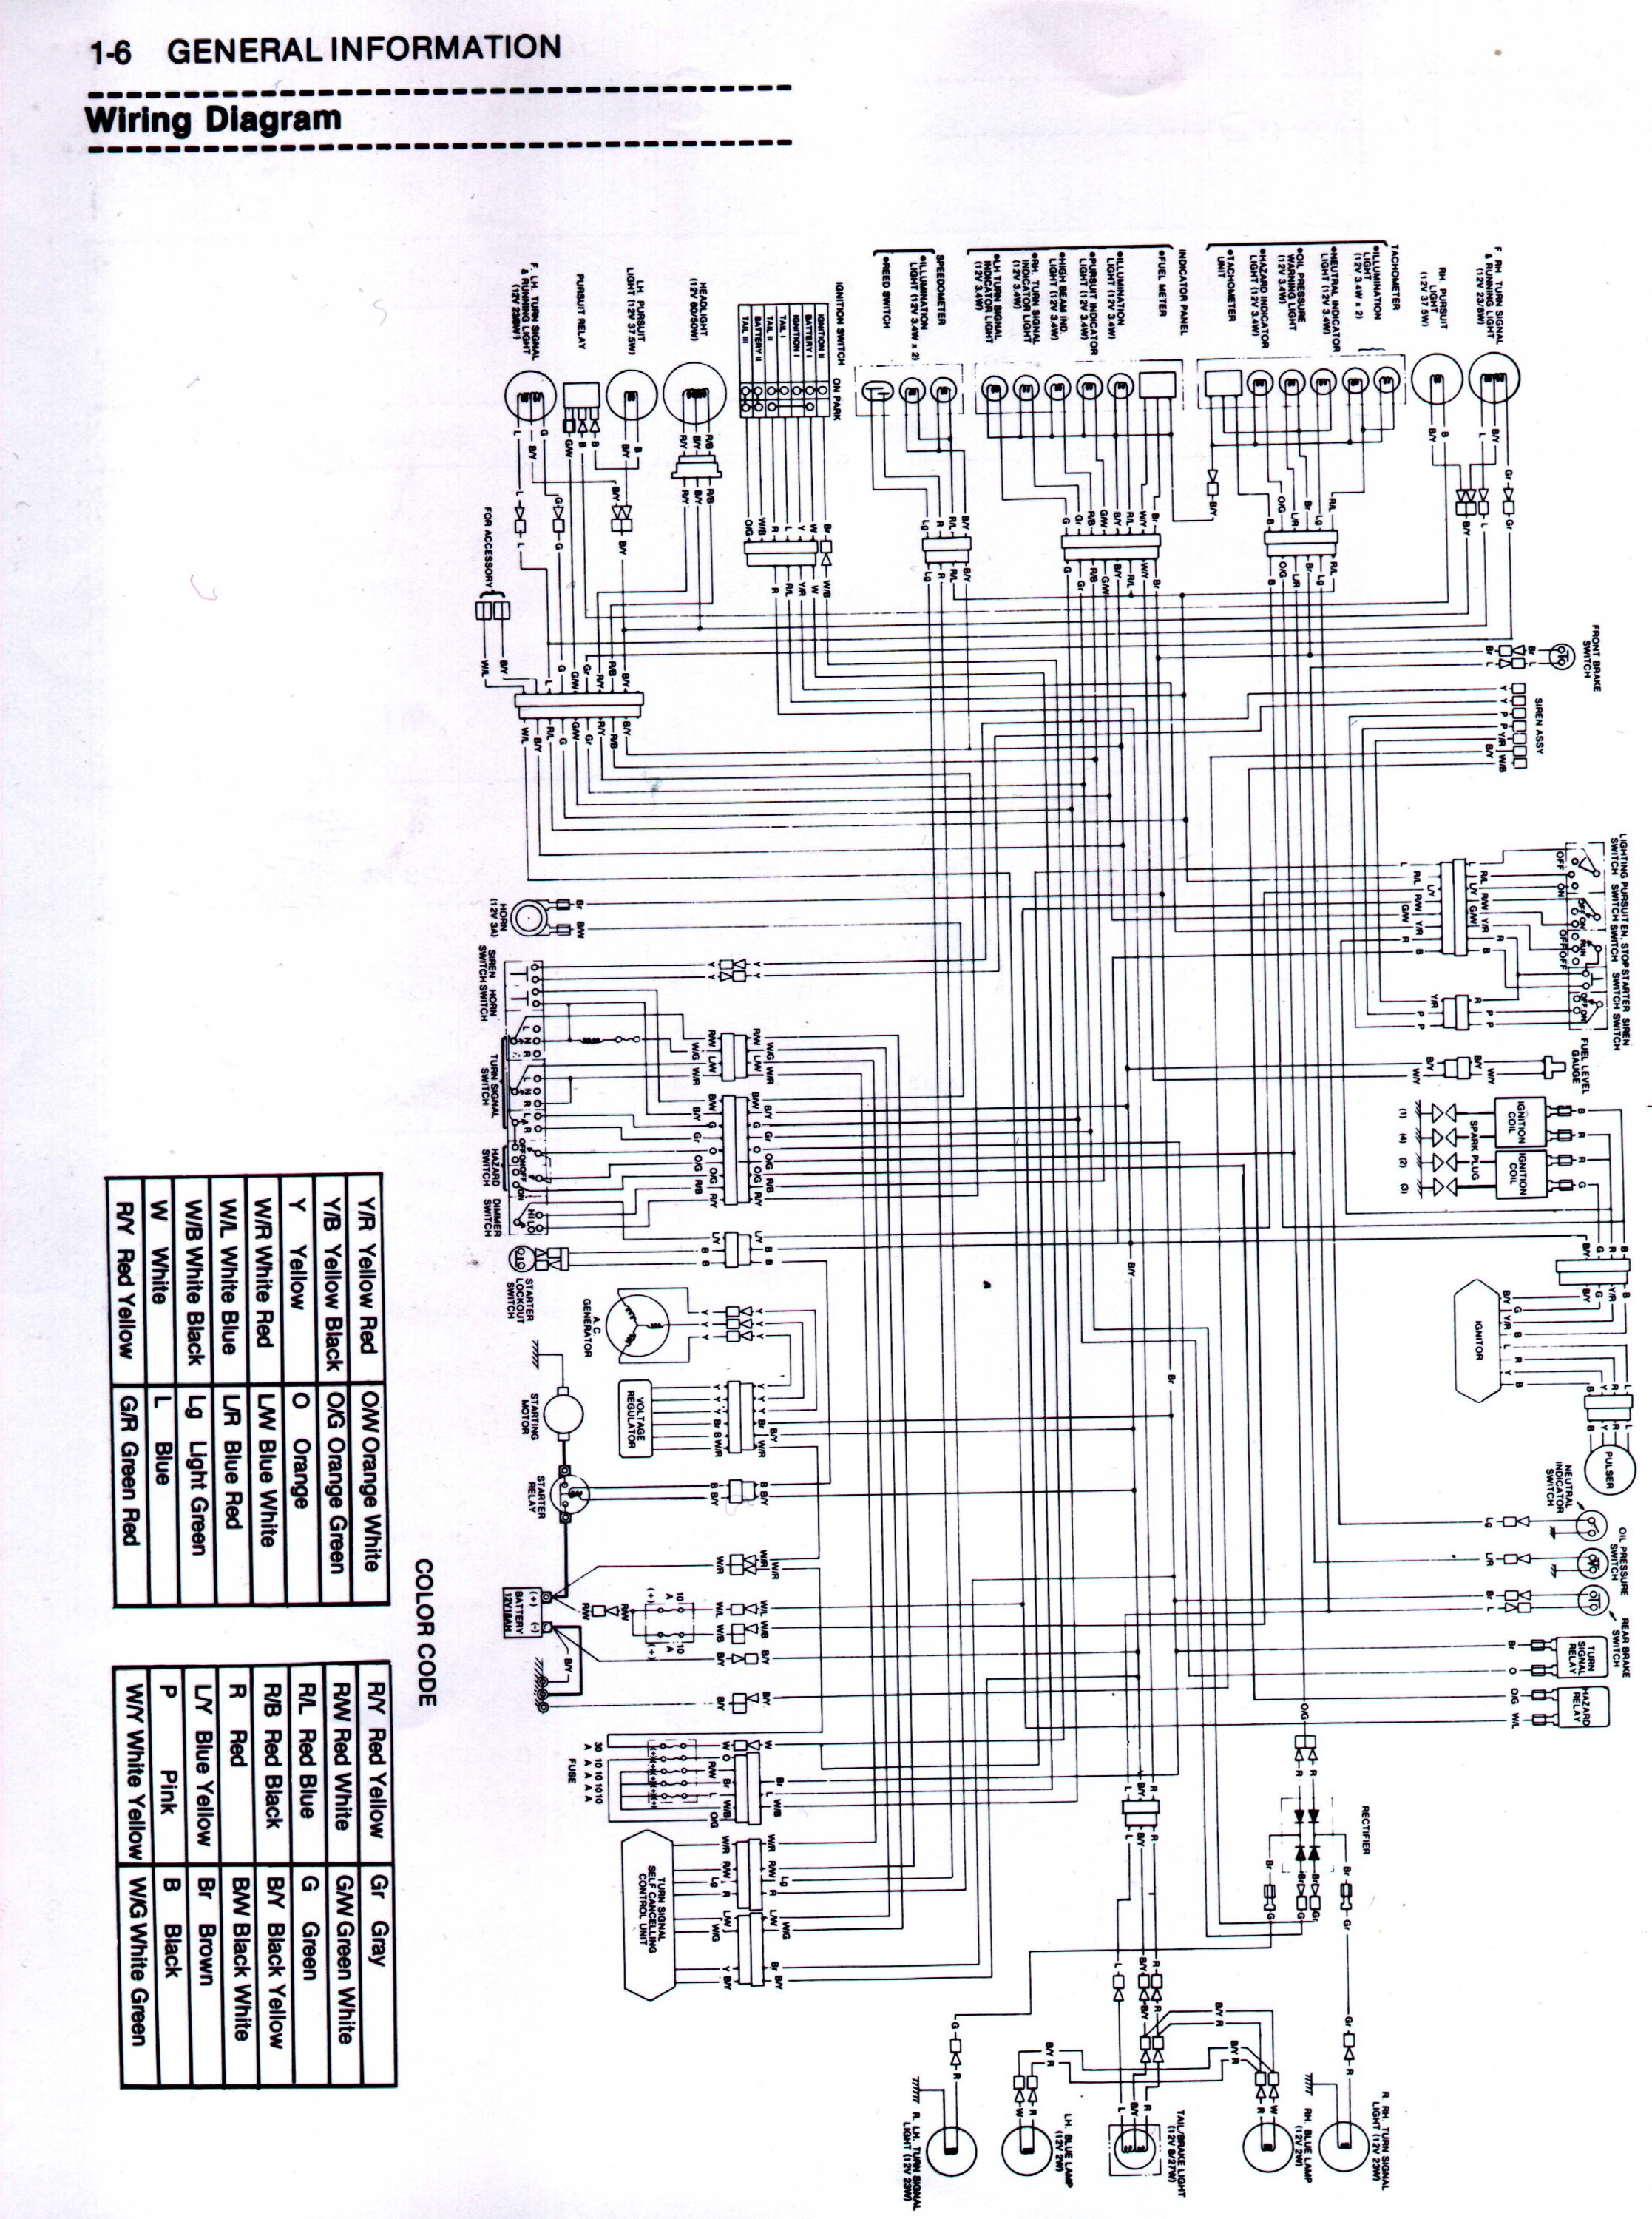 South Africa Honda Rancher Wiring Diagram Reed Switch Circuit Diagram